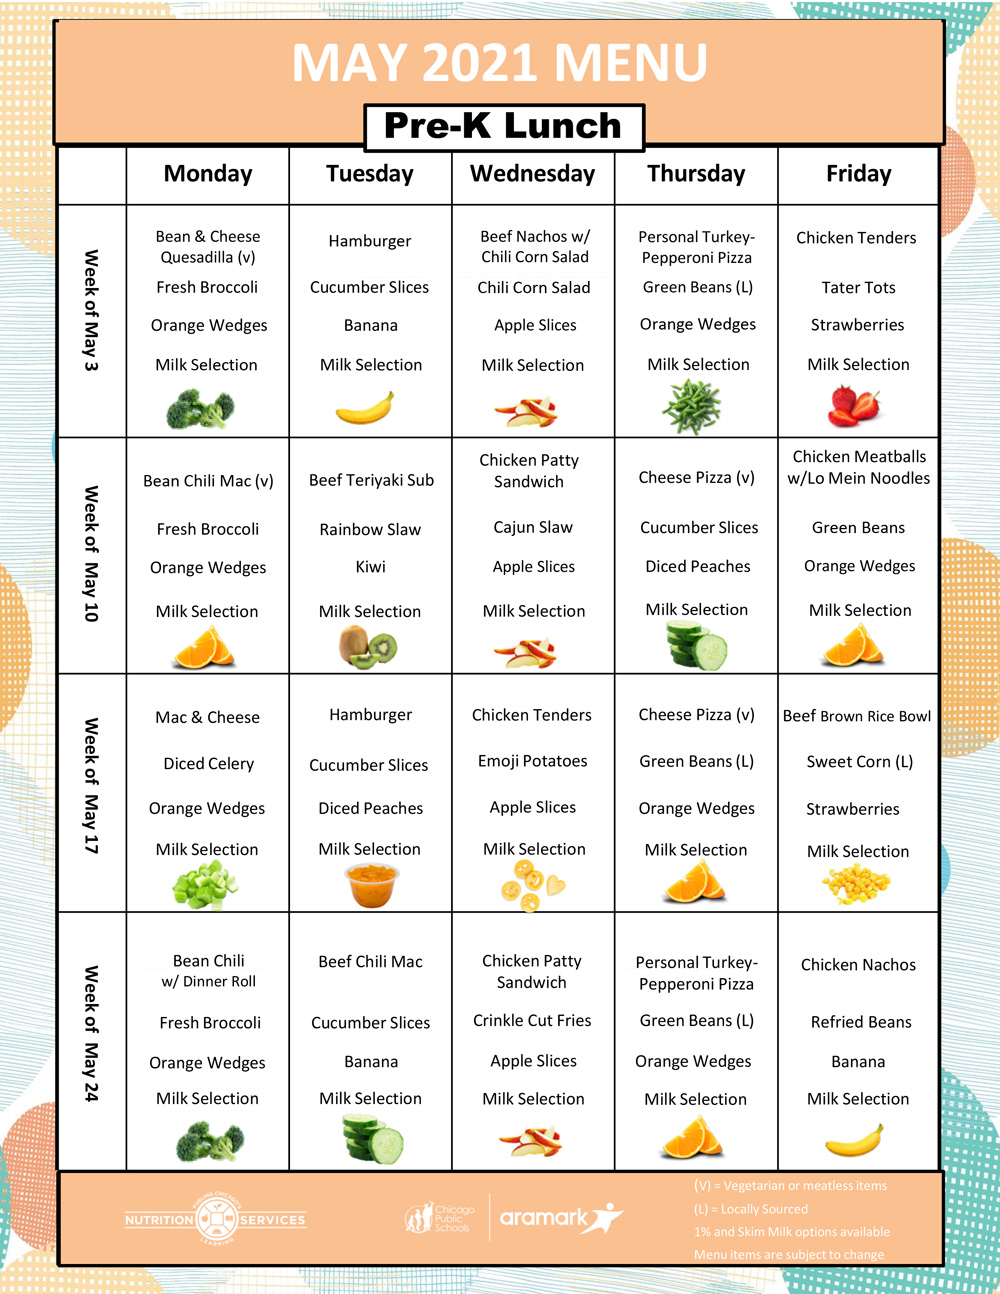 May 2021 Pre-K Lunch Menu